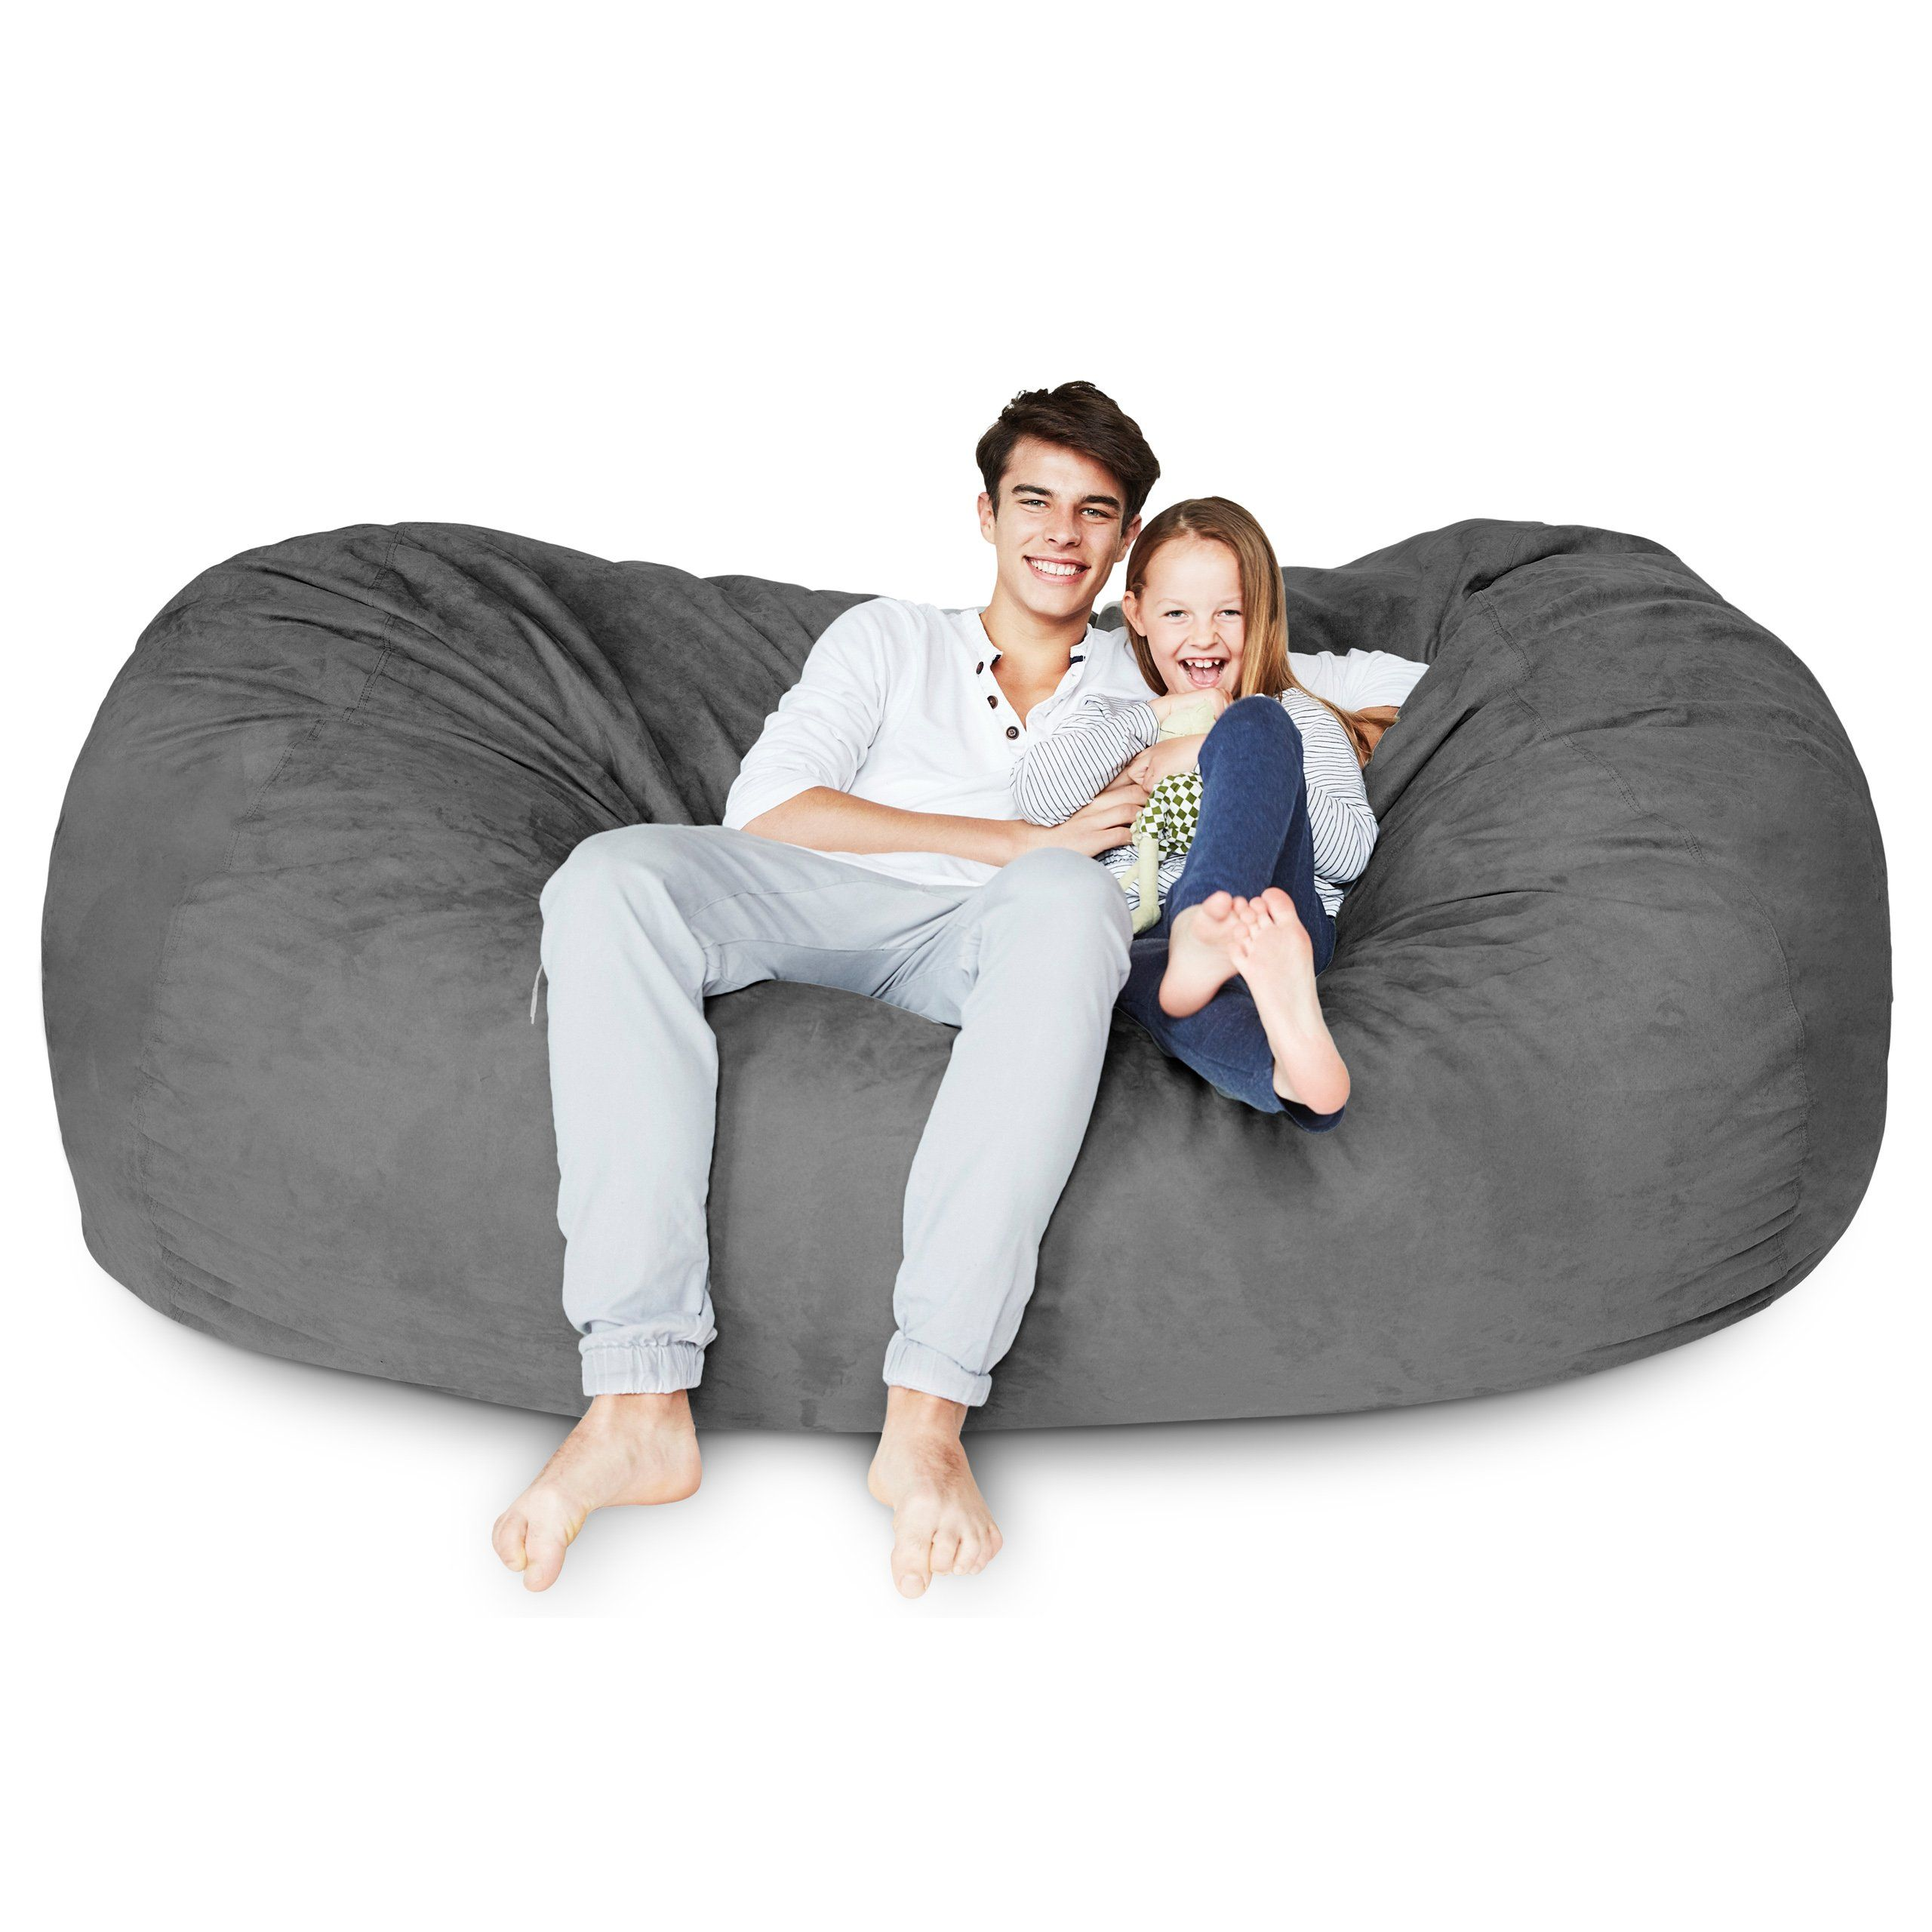 Lumaland Luxury 7foot Bean Bag Chair With Microsuede Cover Dark